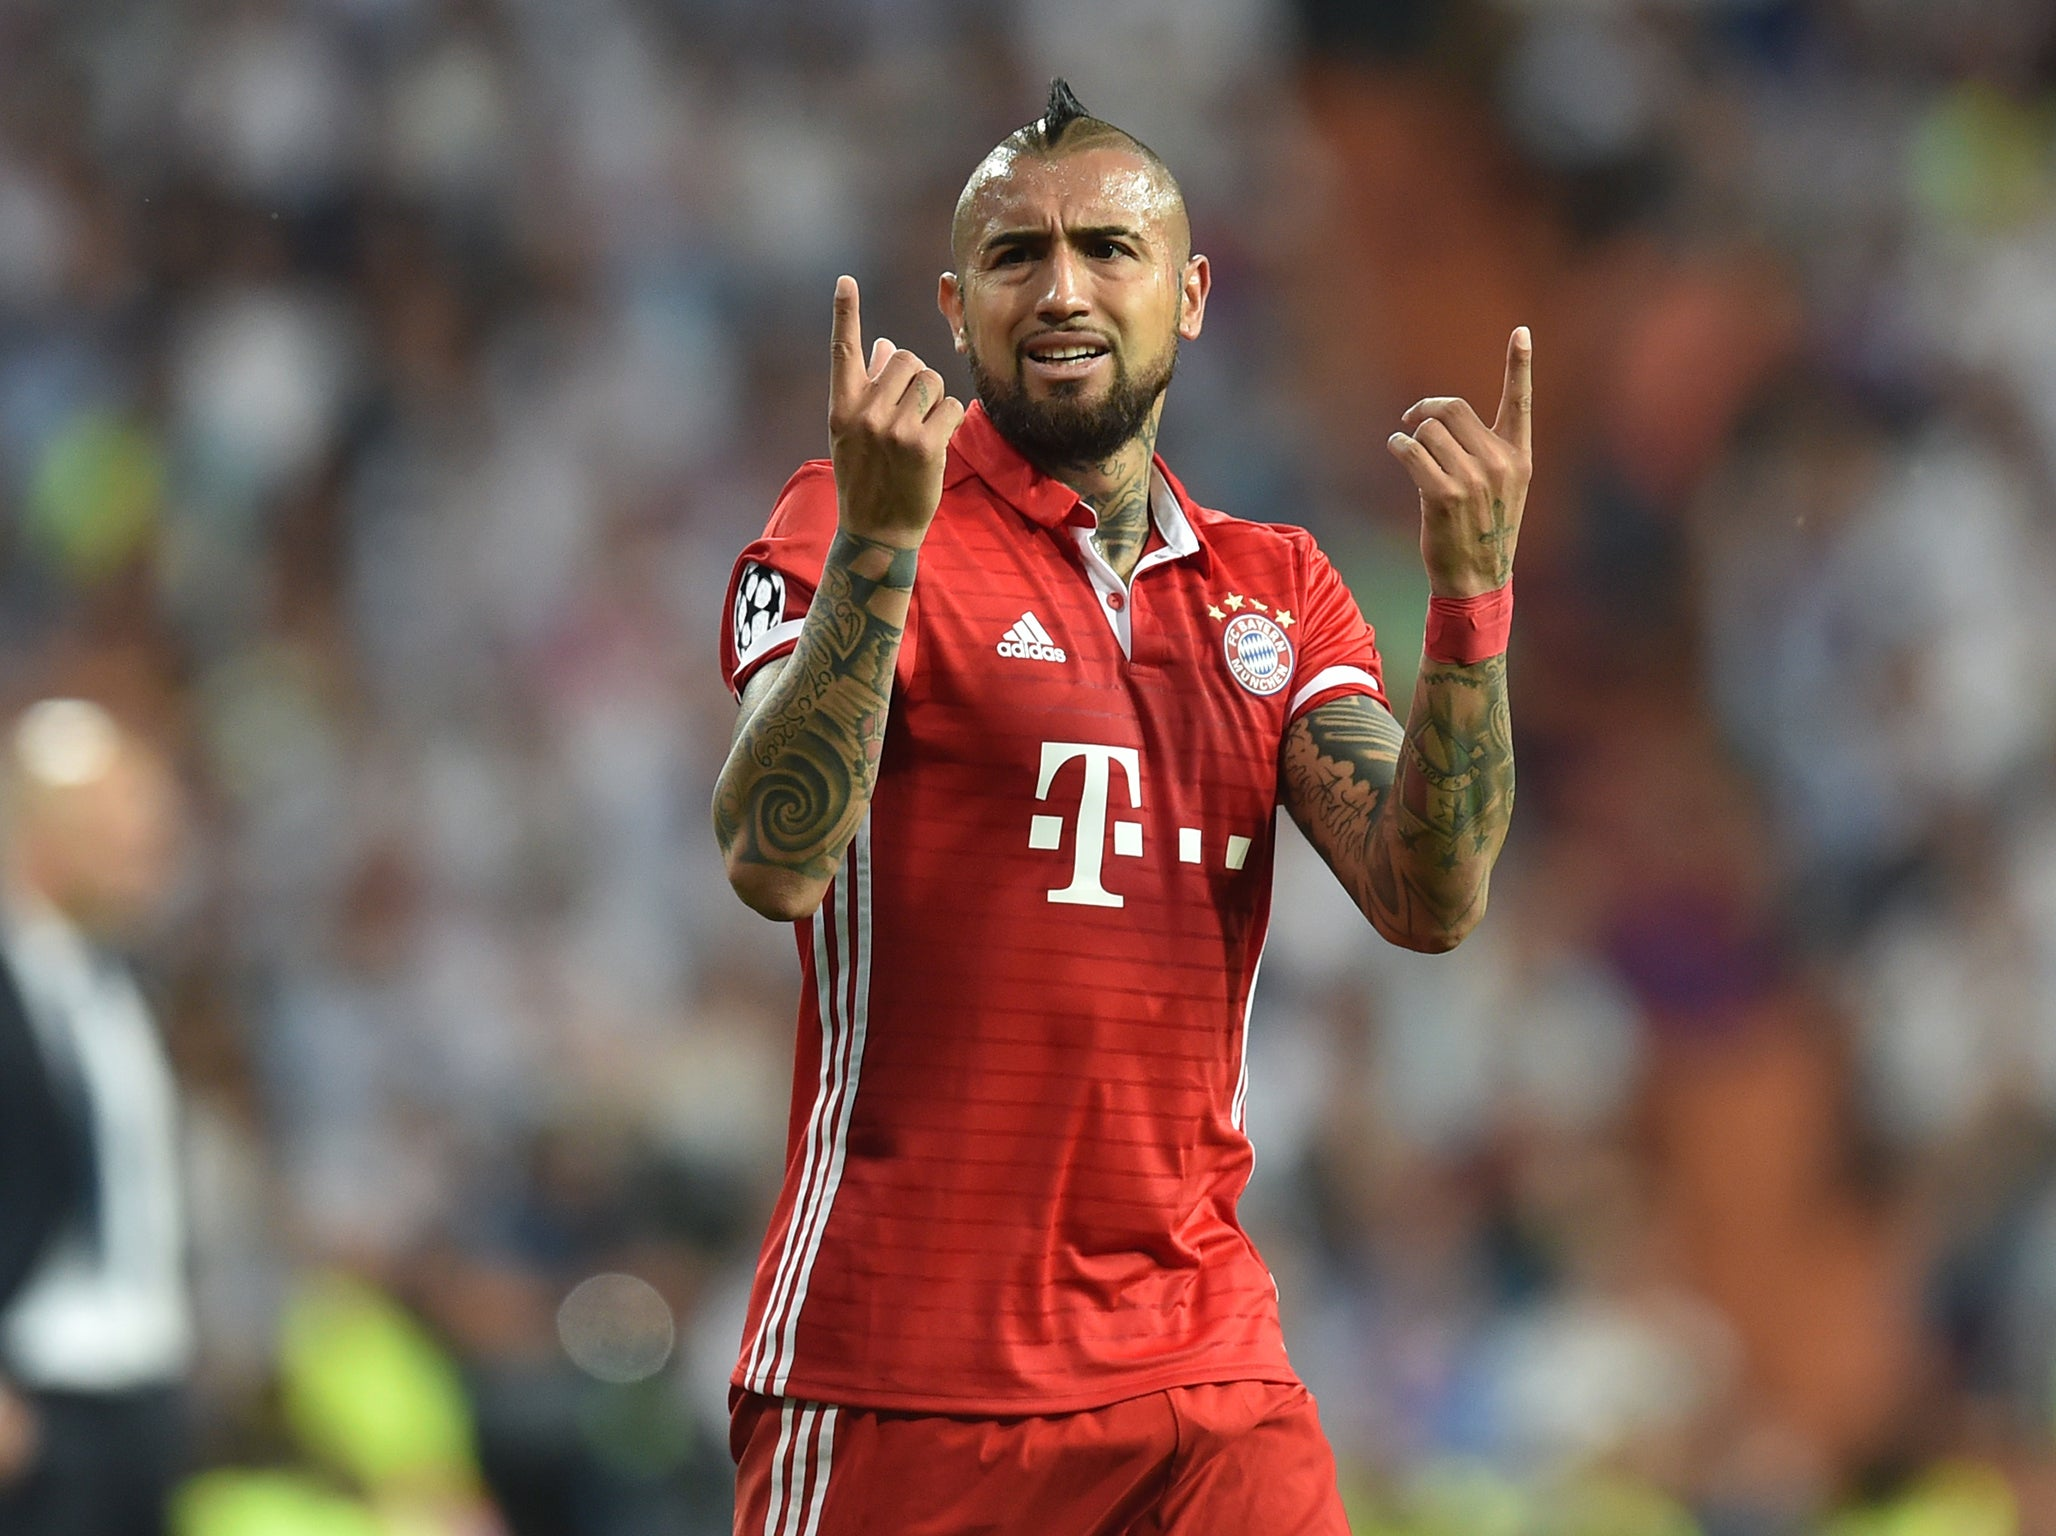 Vidal left fuming over Champions League 'robbery'